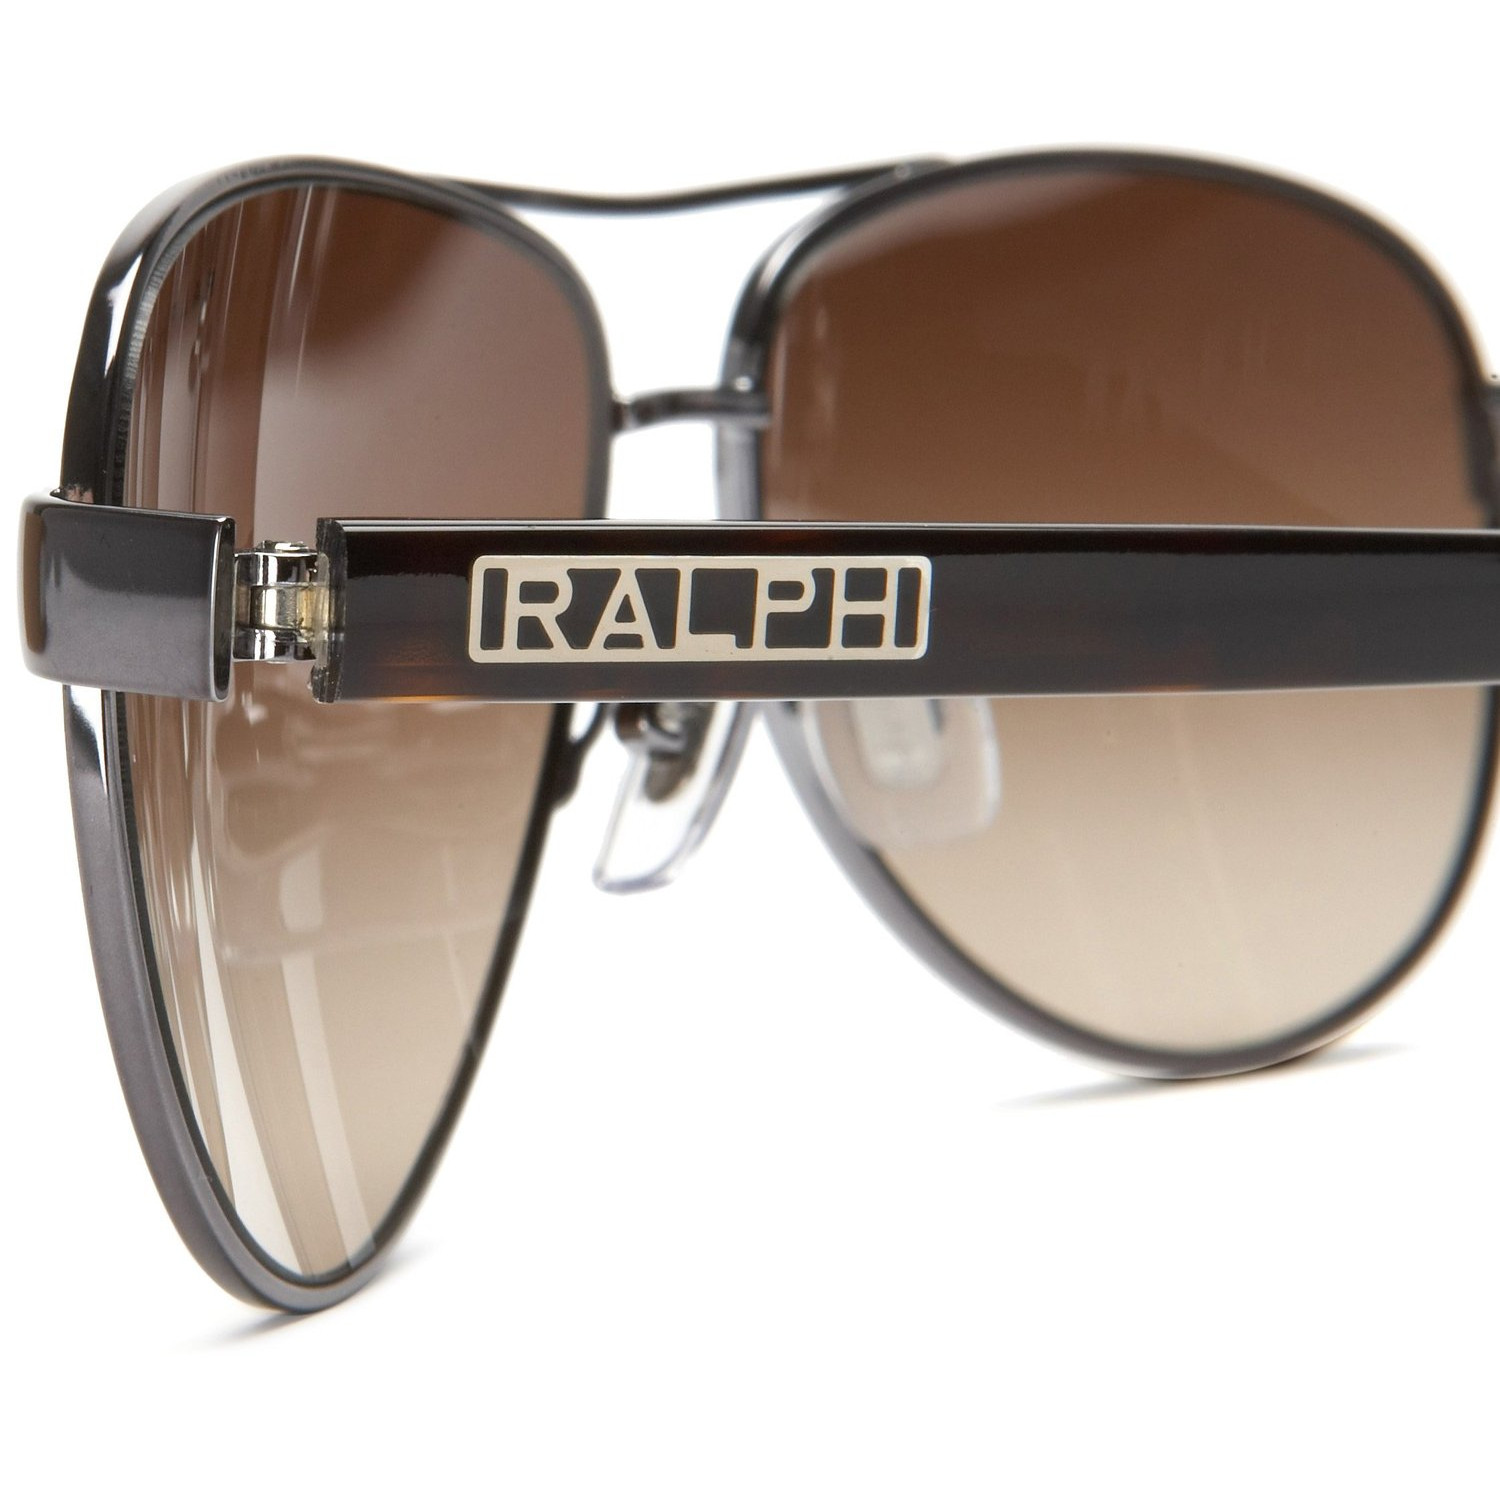 9248 gafas ralph lauren aviator color marron para hombre